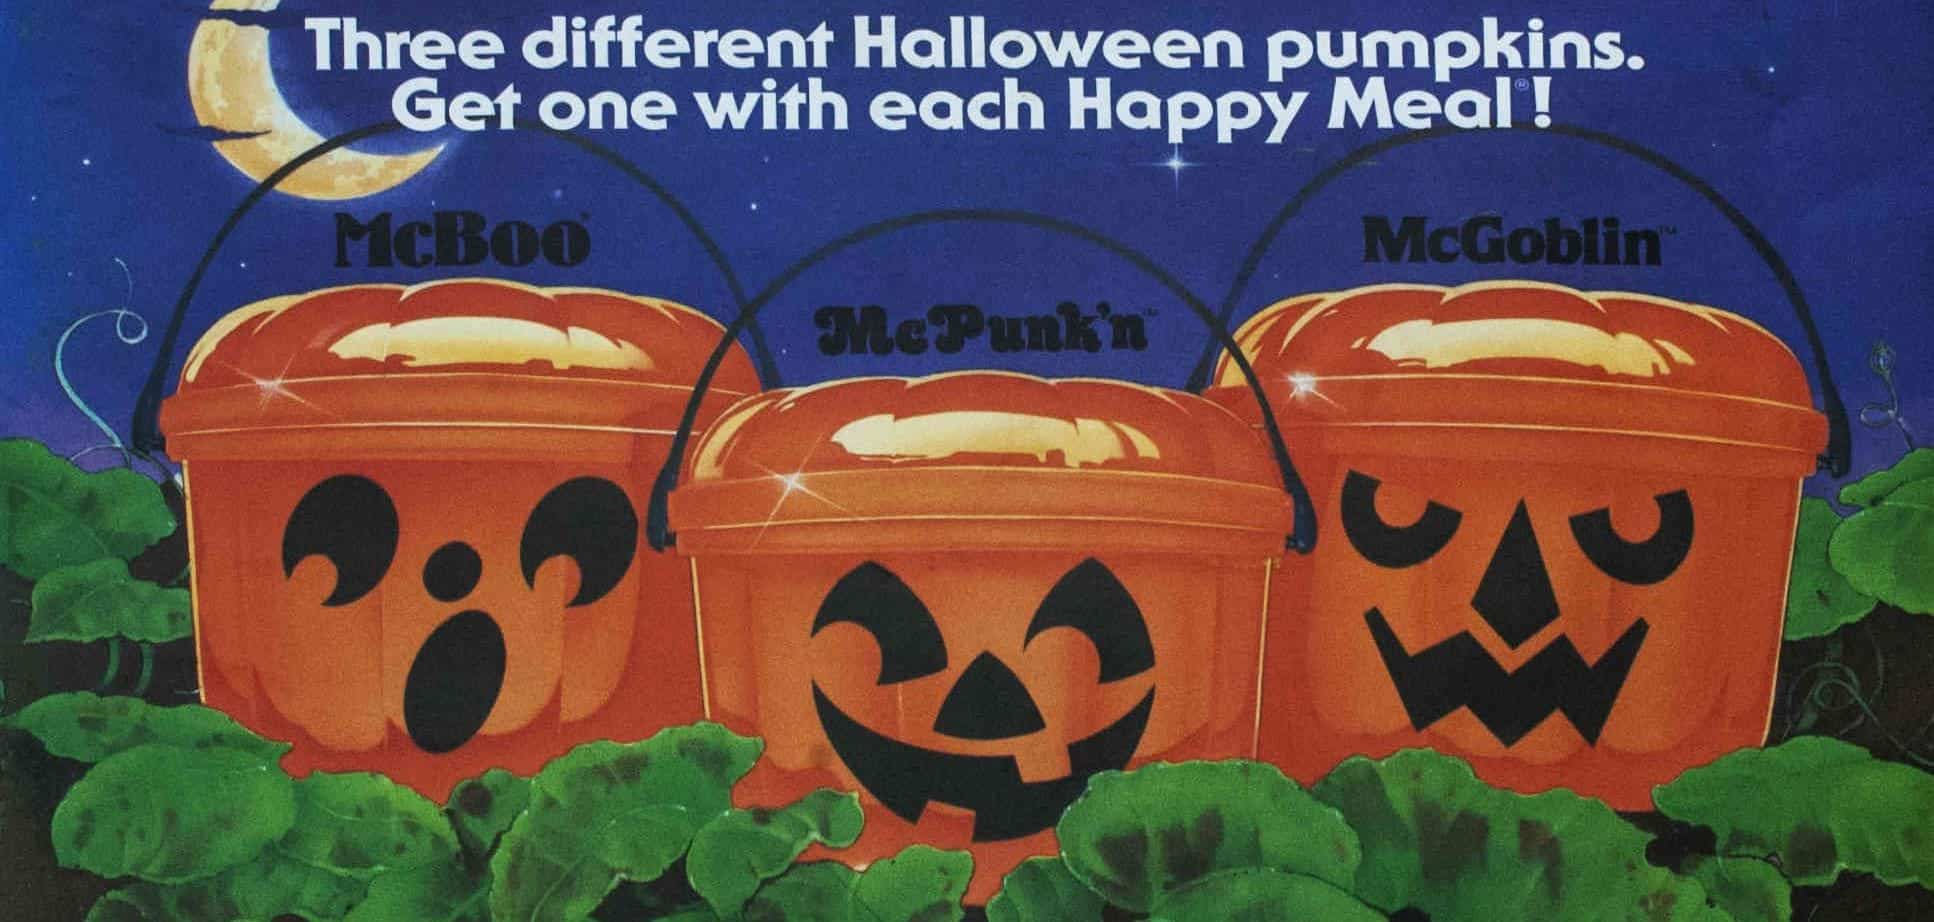 Mcdonalds Halloween 2020 Kid Meals 2020 A Brief History of McDonald's Halloween Buckets | Dread Central